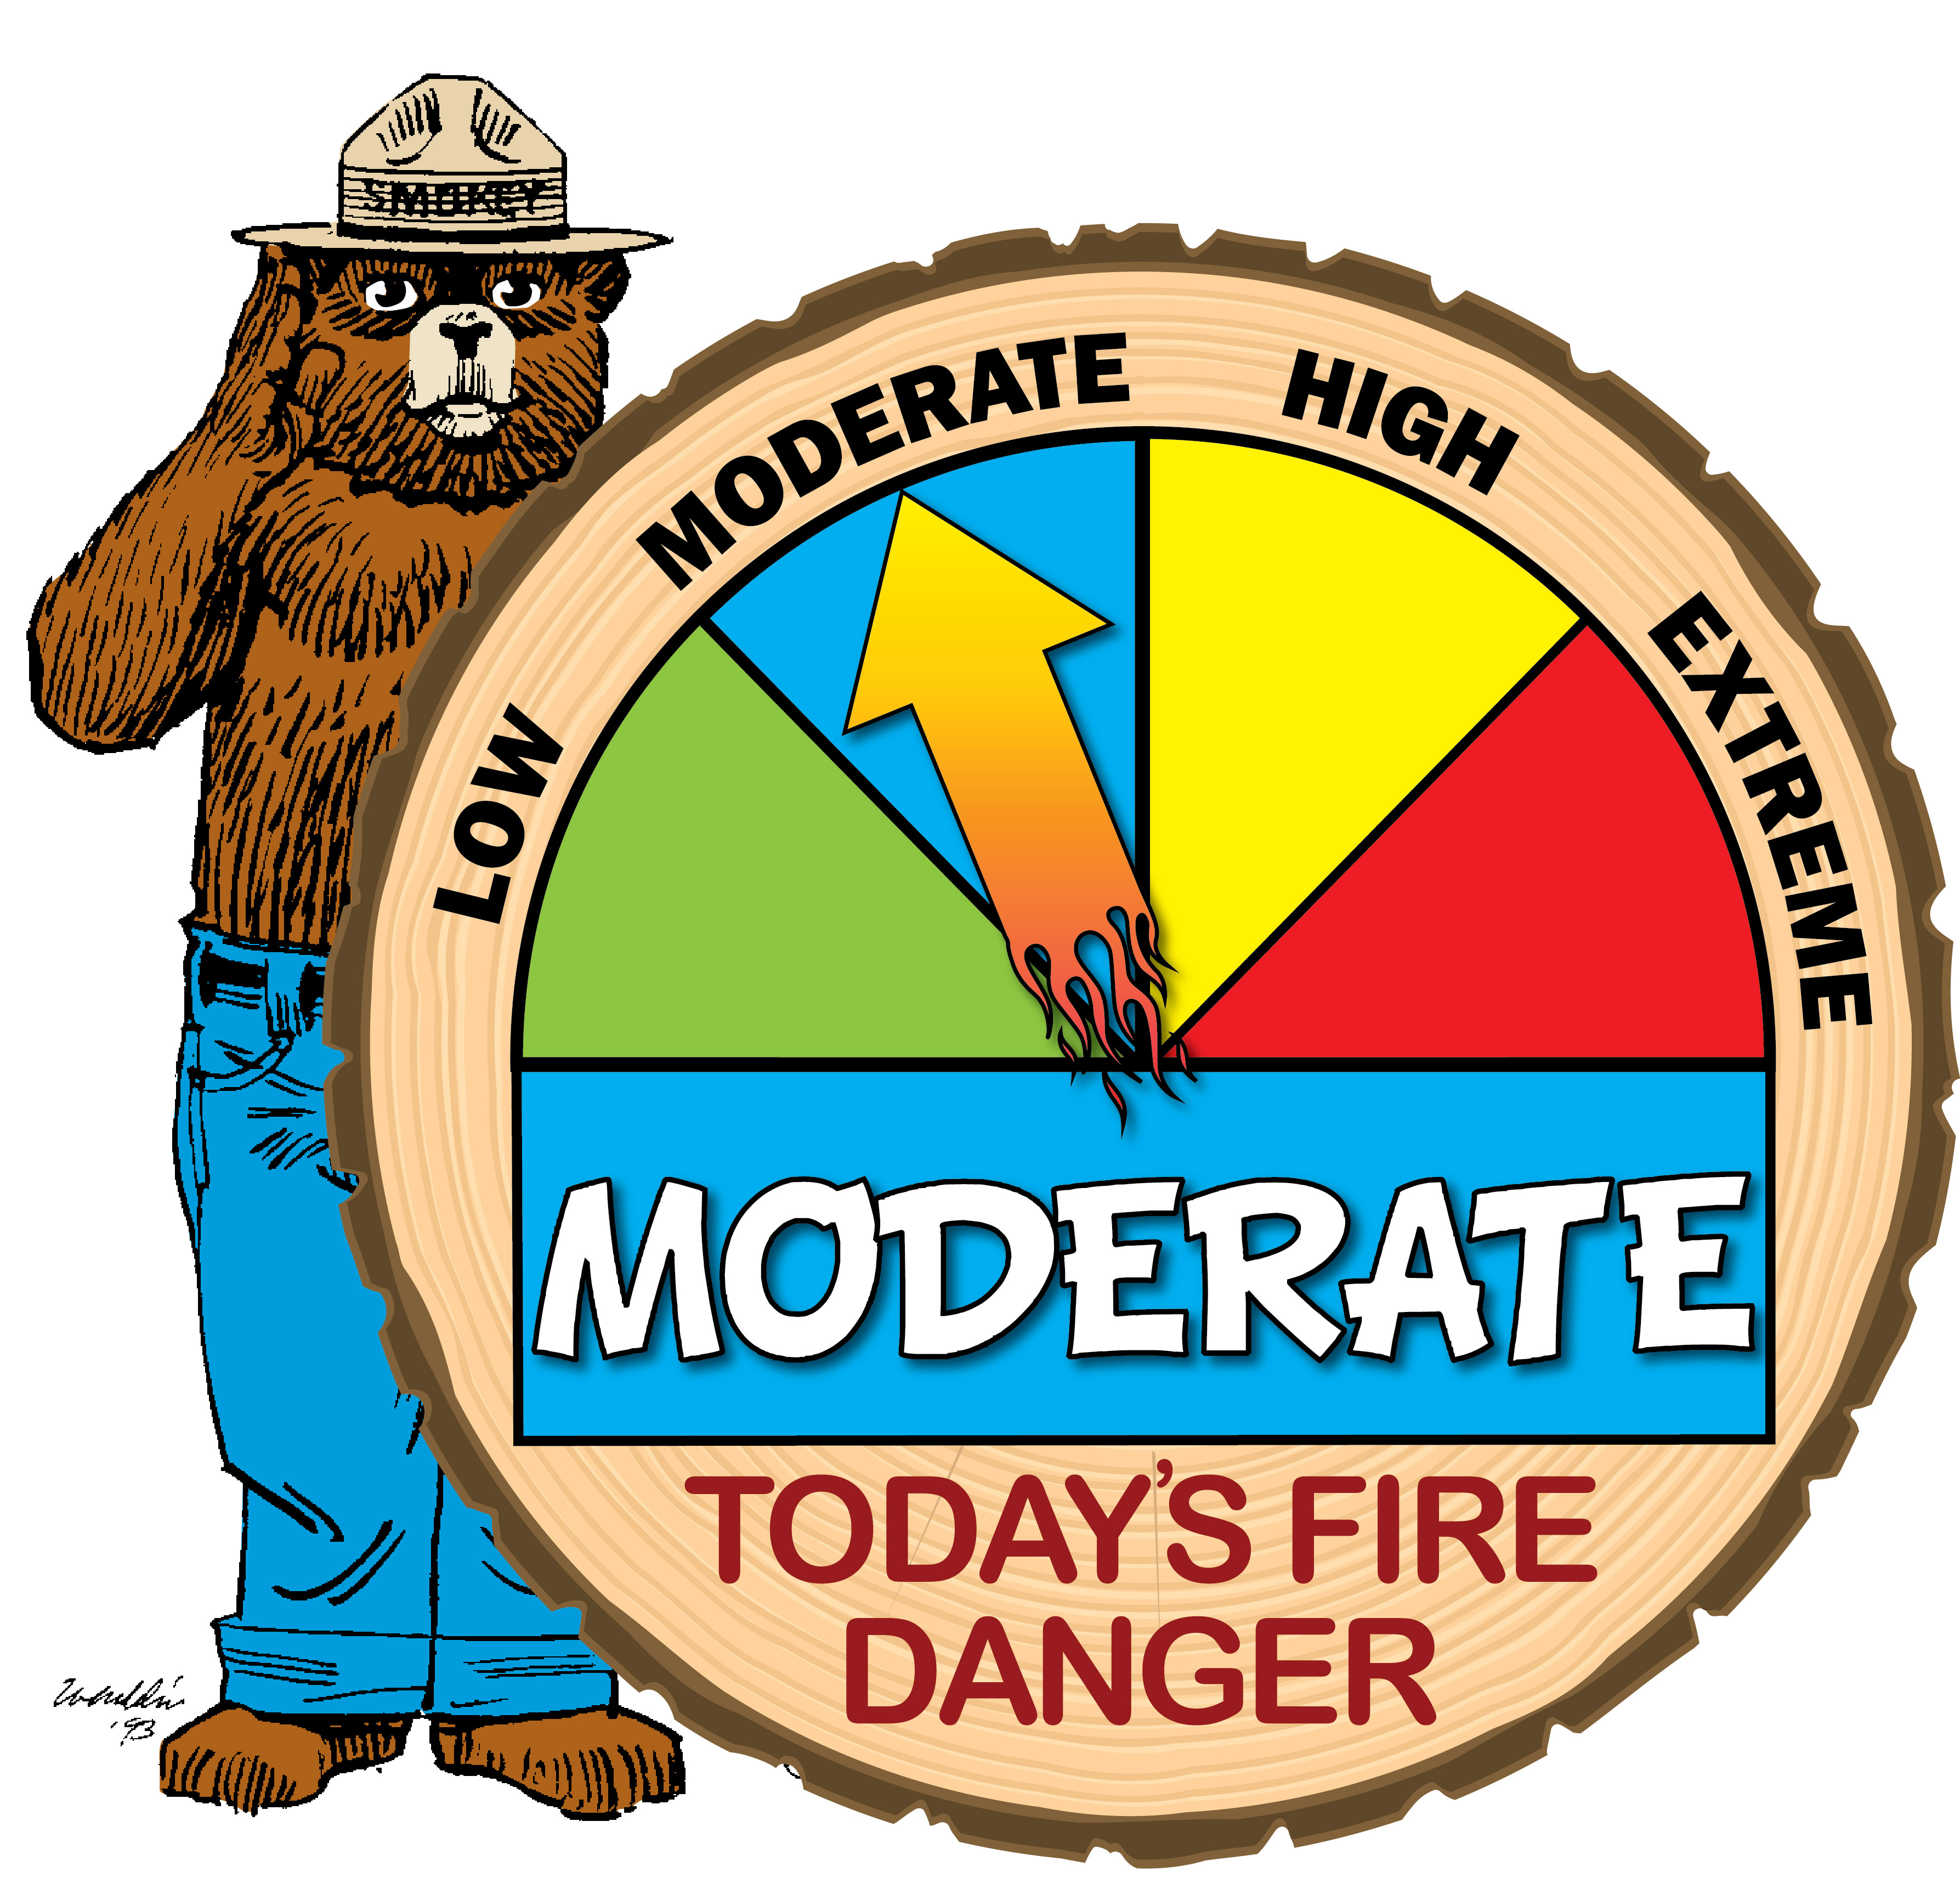 Smokey the Bear shows the fire danger level is moderate.